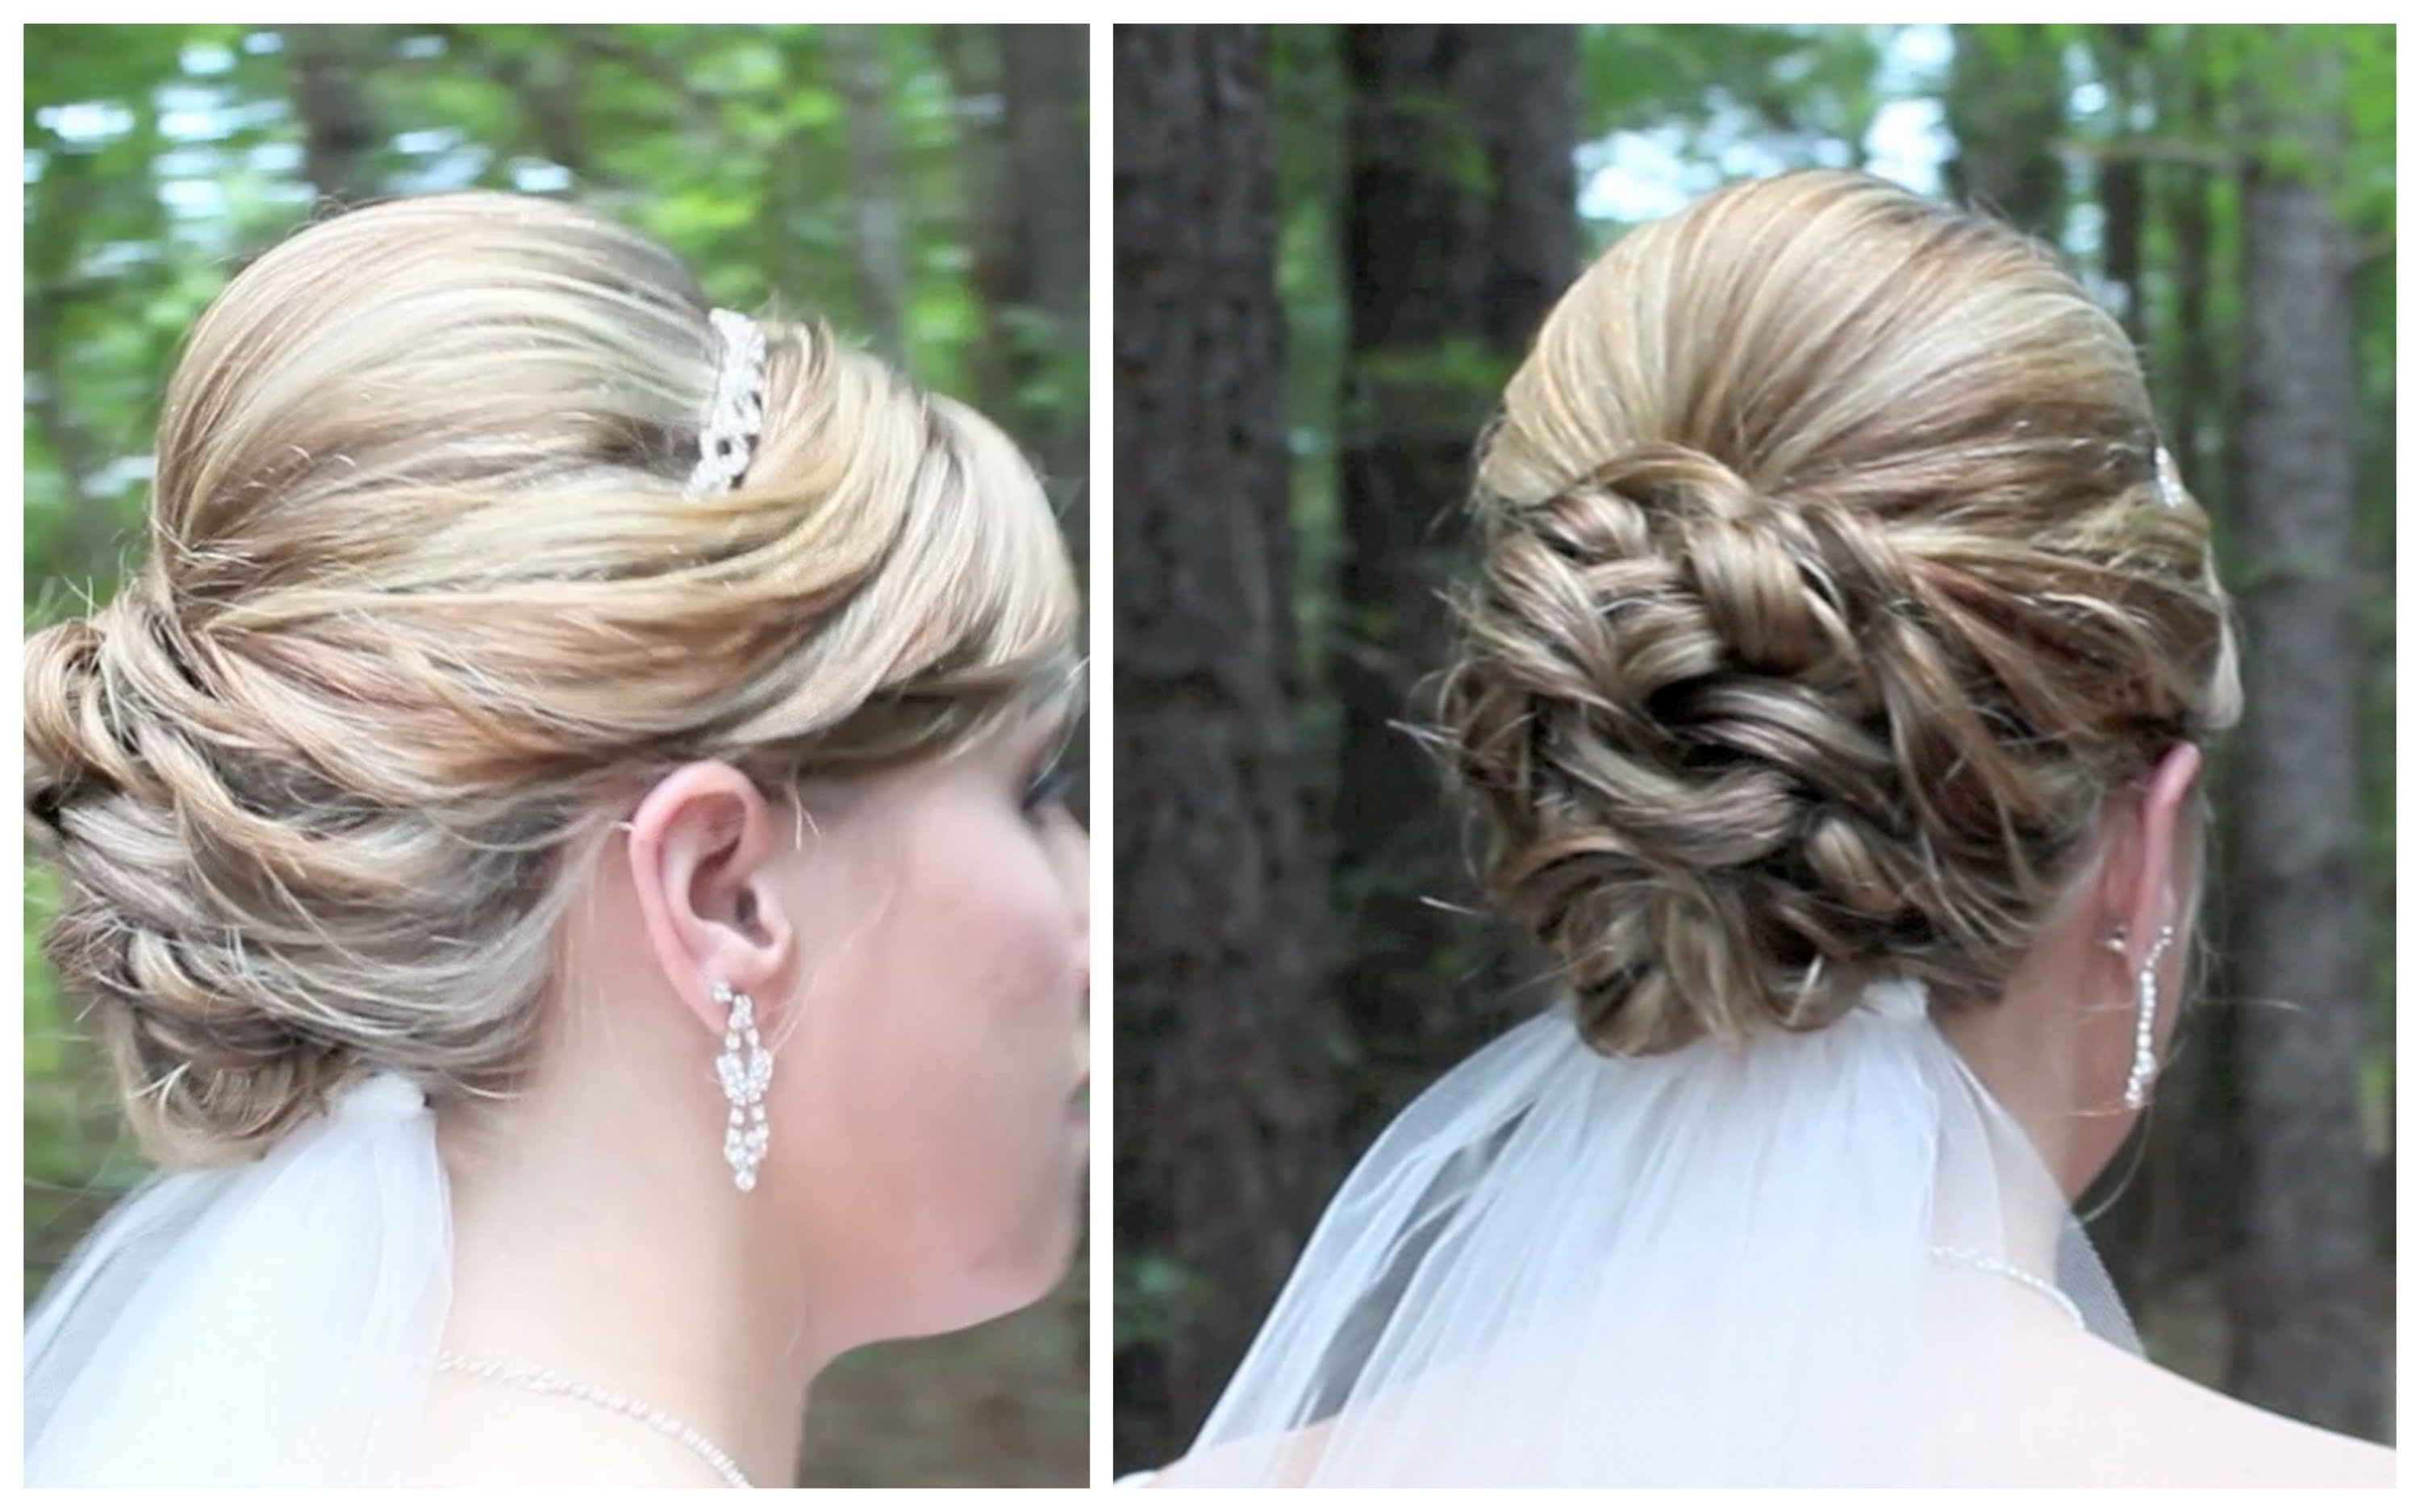 2017 Simple Wedding Hairstyles For Shoulder Length Hair Pertaining To Bridal Updo On Shoulder Length Hair – Youtube (View 3 of 15)